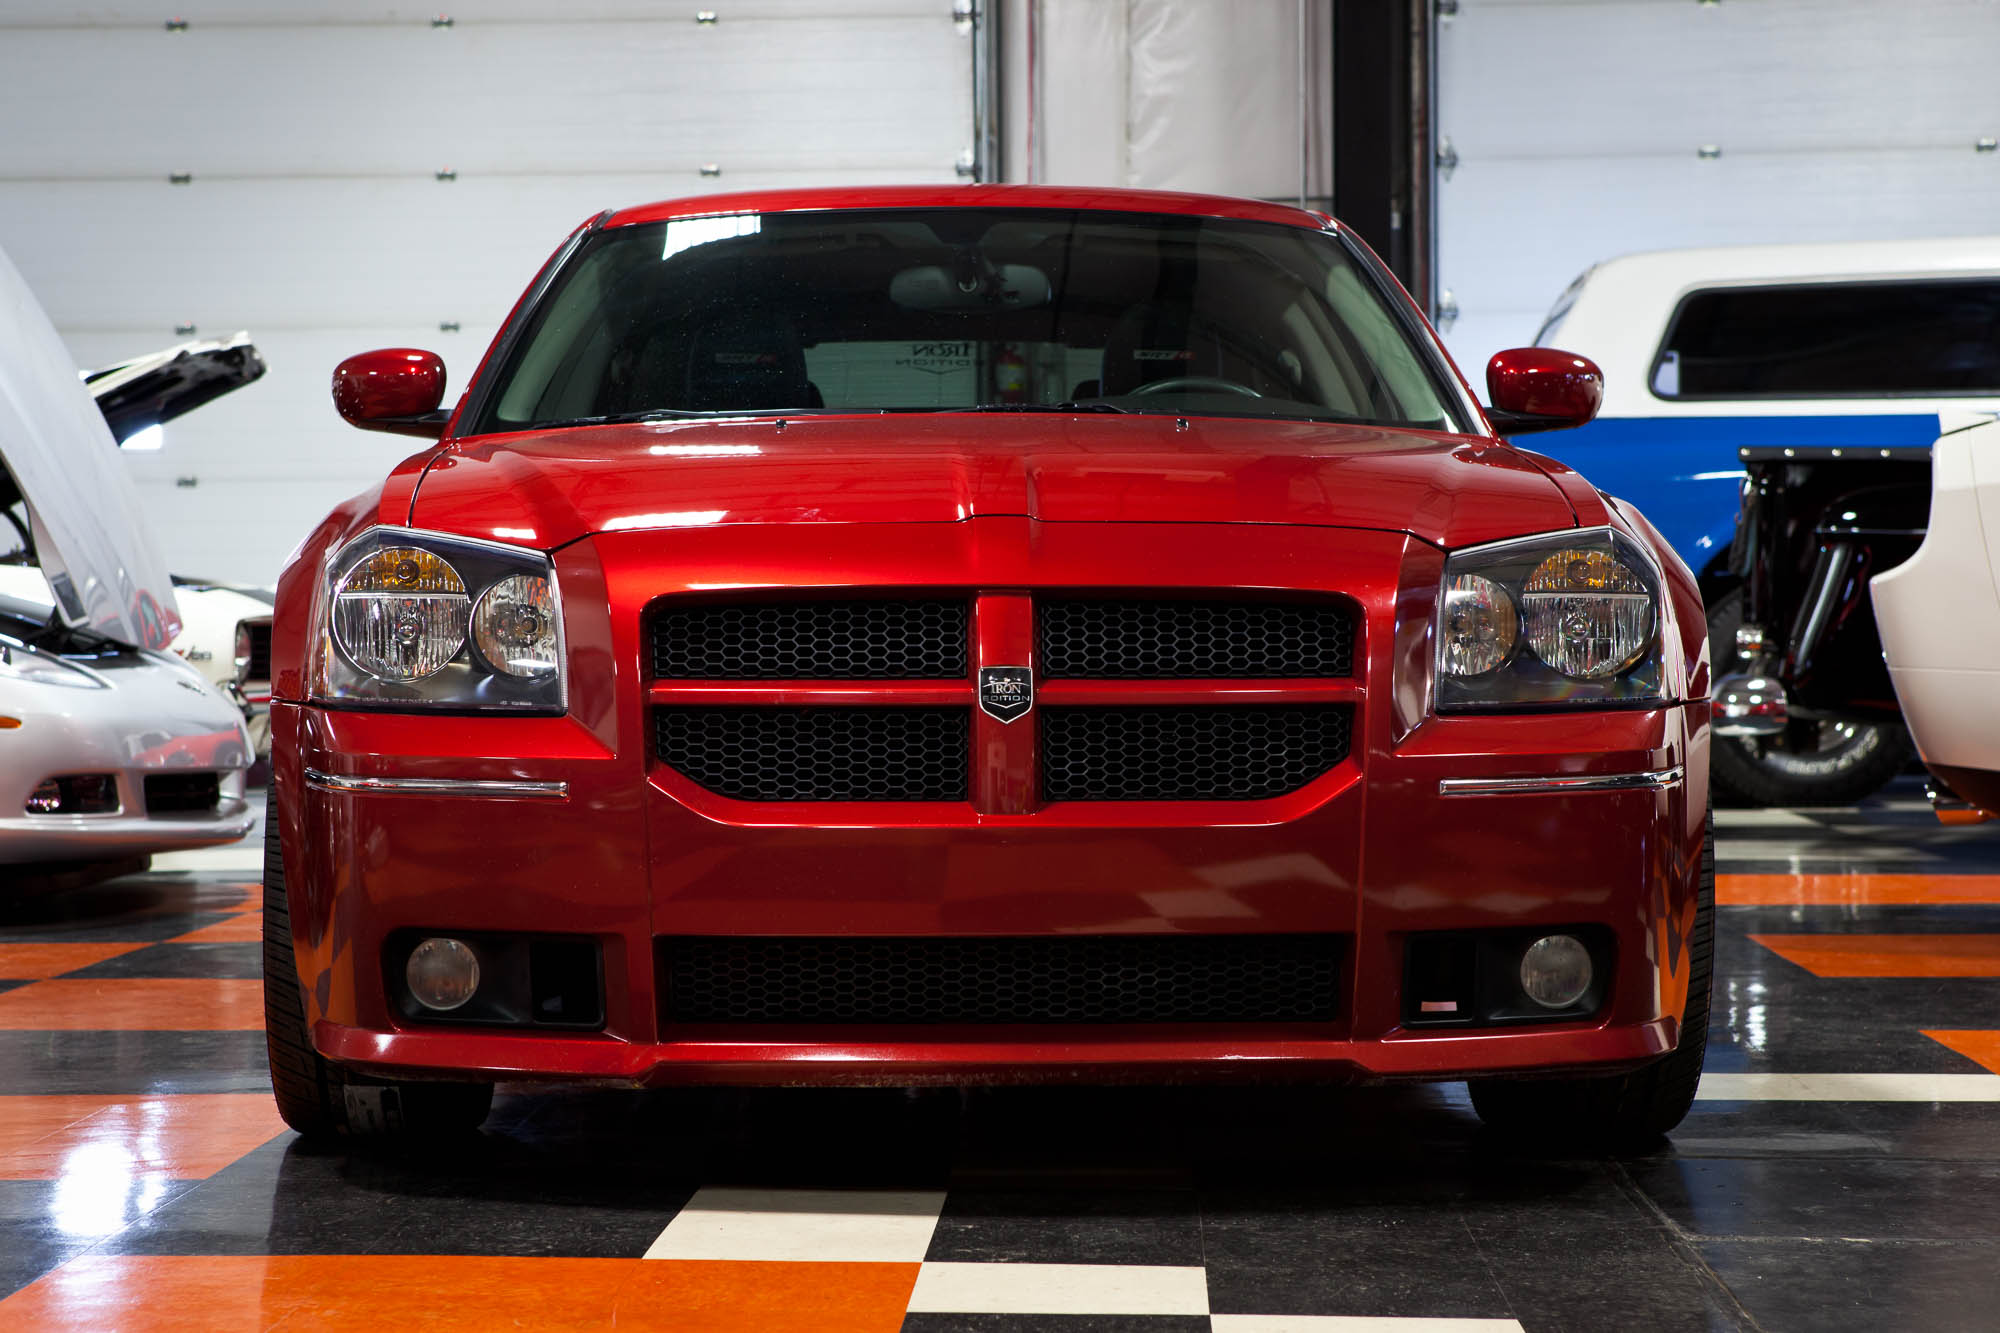 2006 Dodge Magnum Srt8 Sold The Iron Garage